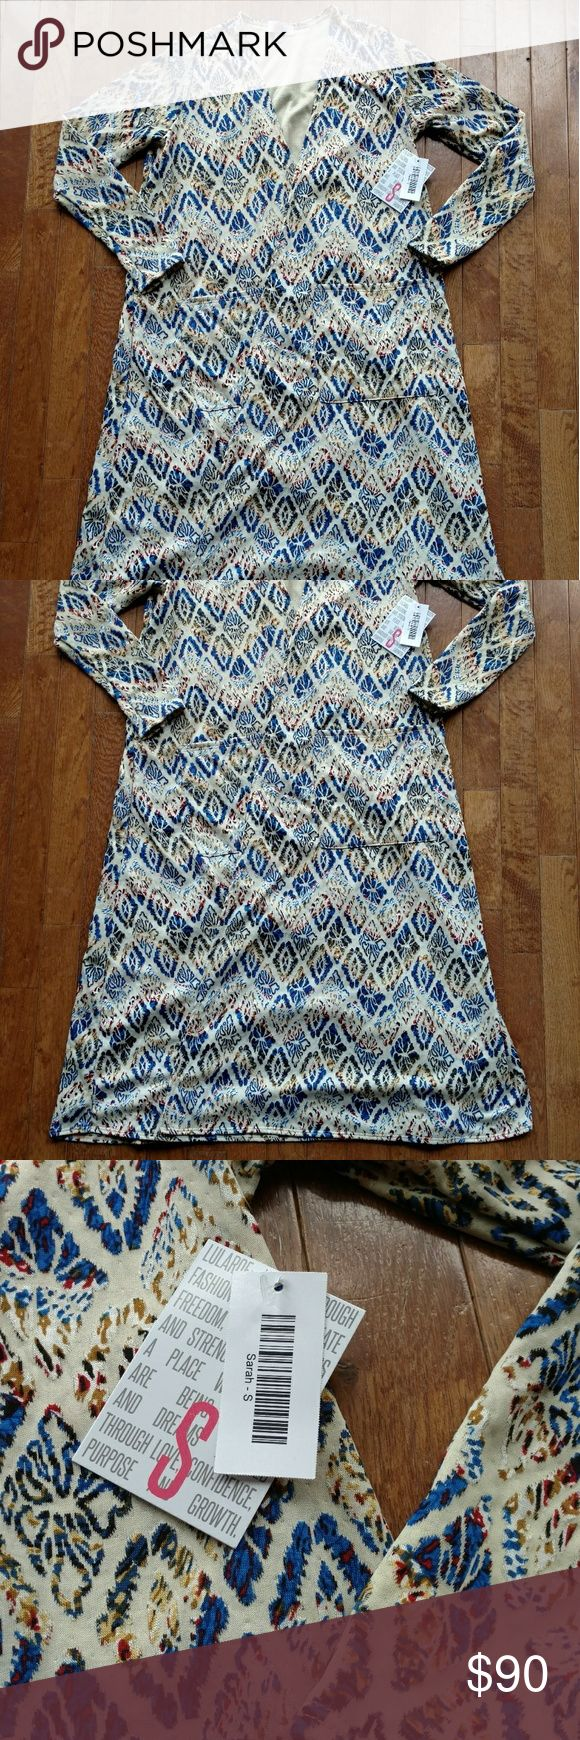 Simply Stunning Sarah Duster This is just gorgeous! Cream background with overlayed pattern of blue, tan, black and maroon. Head Turner for sure! Small amount of stretch. Completely brand NWT. Hard to find item. Smoke free home. LuLaRoe Tops